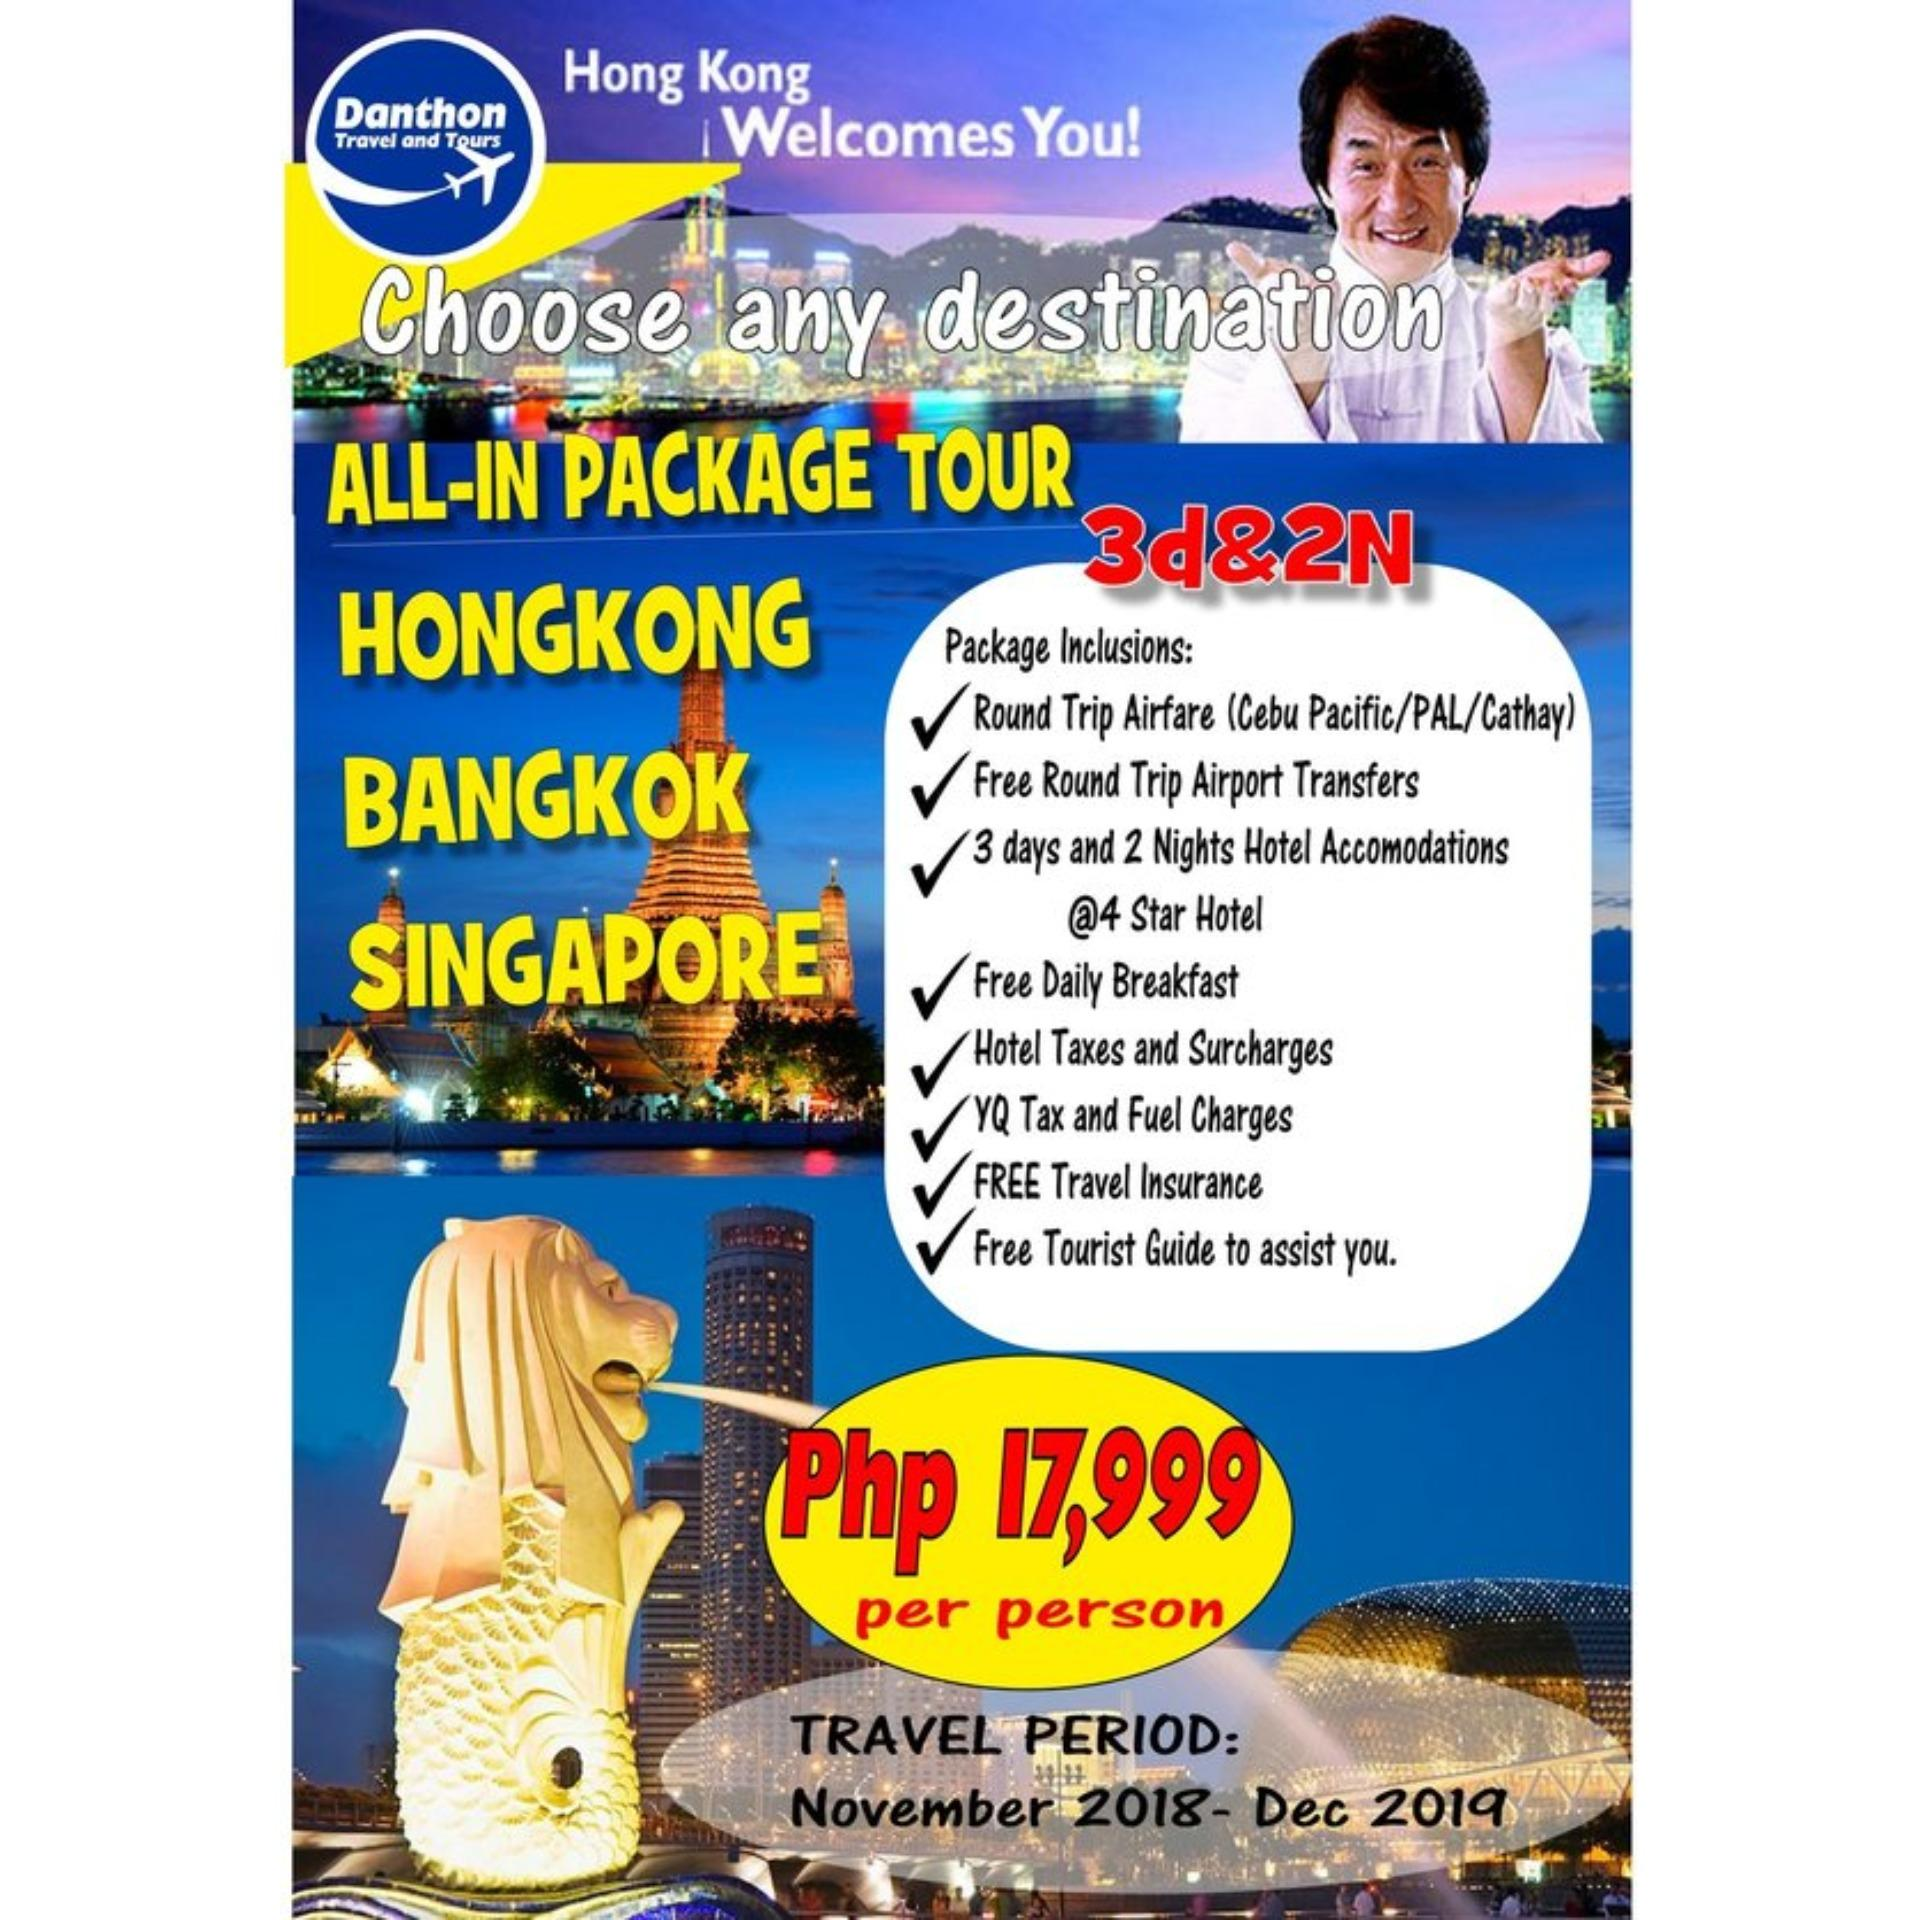 Hong Kong Travel Package With Airfare 2018  lifehacked1stcom